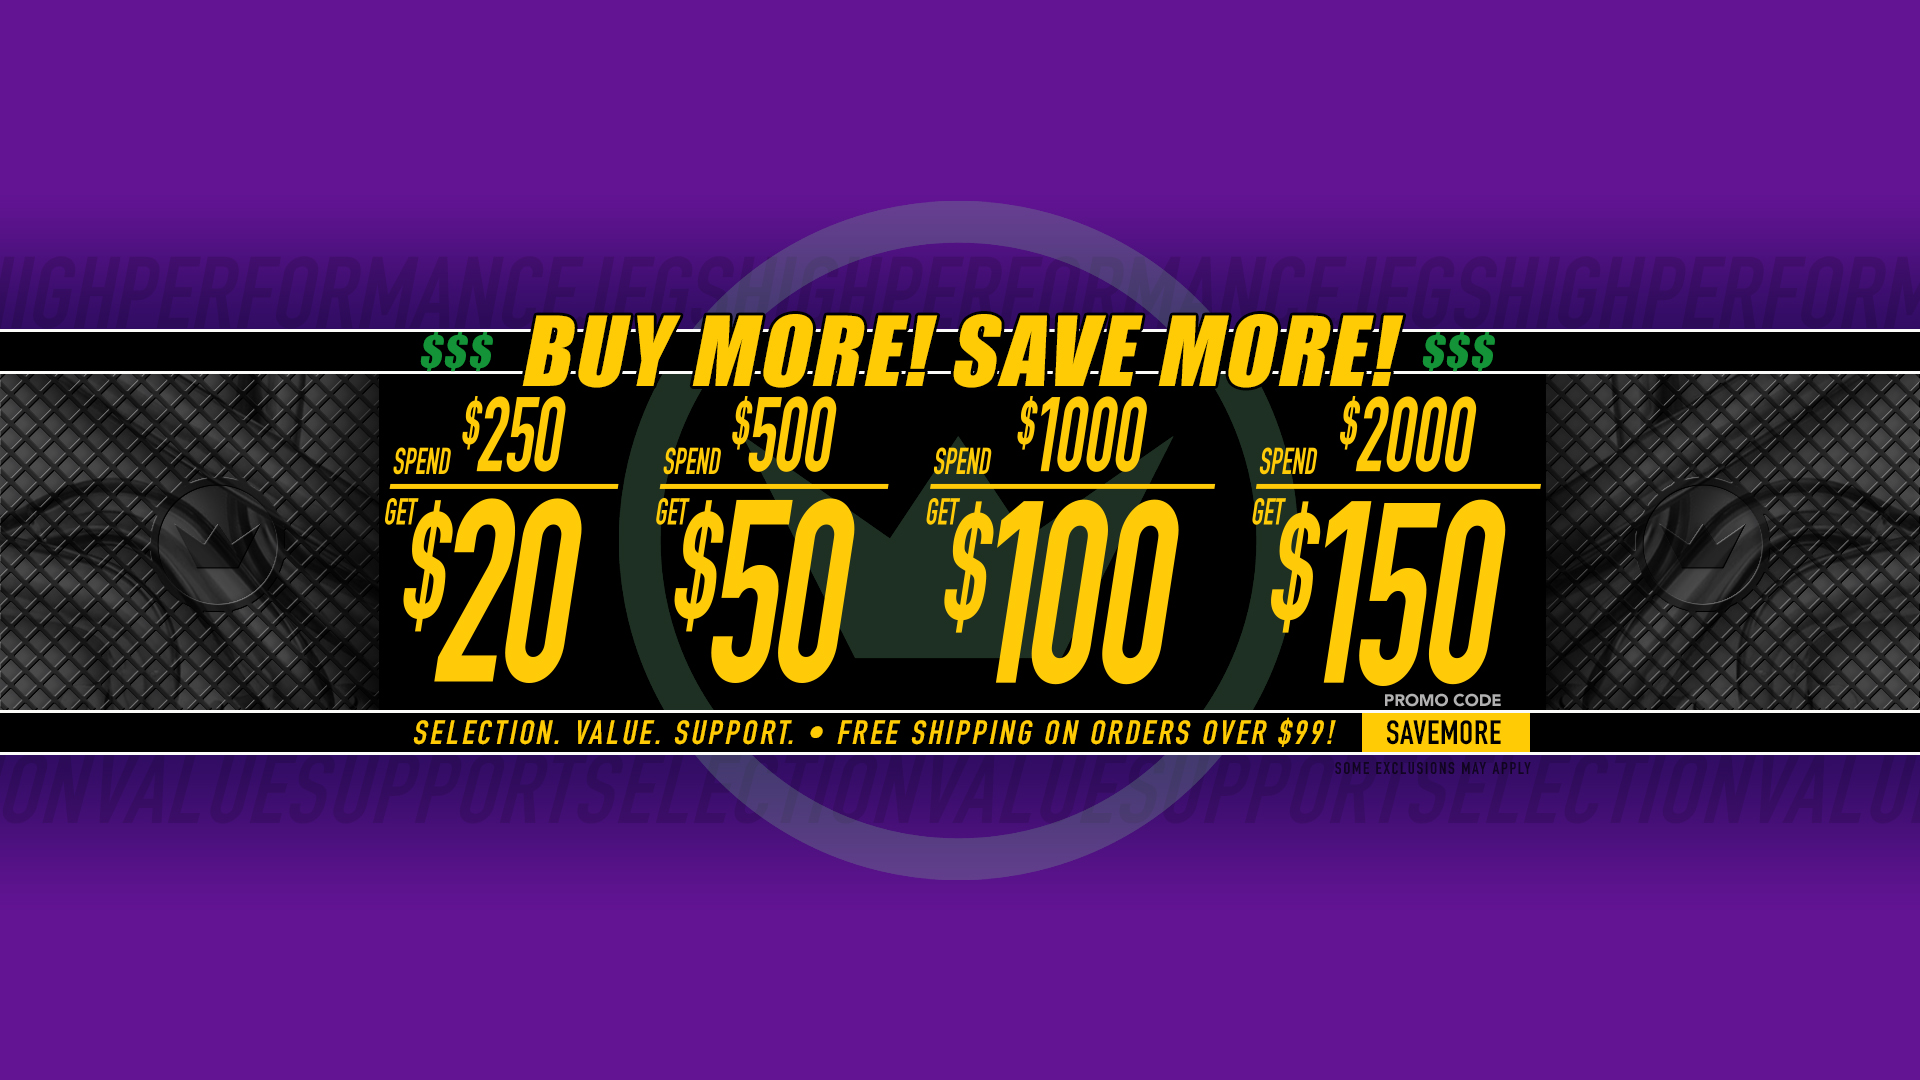 Save $20 Off $250, $50 Off $500, $100 Off $1,000, $150 Off $2,000 - Promo Code SAVEMORE